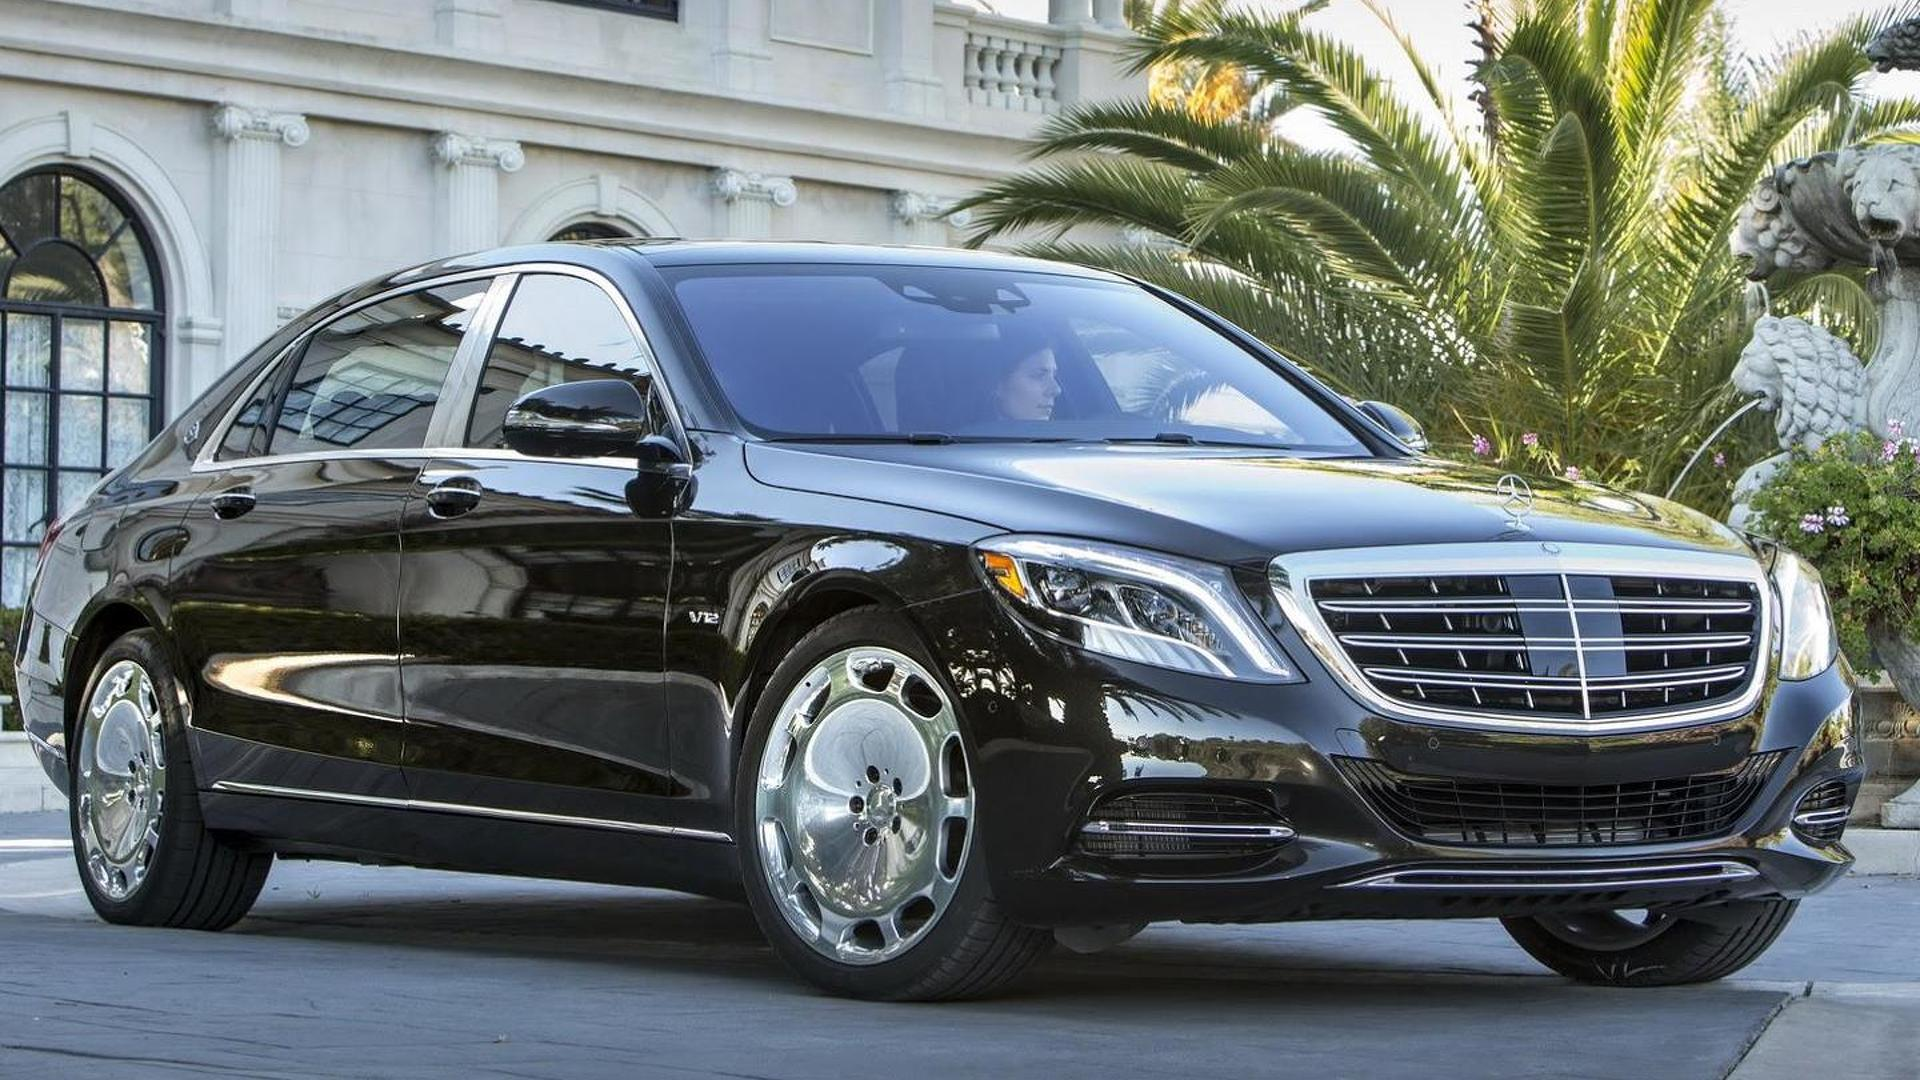 2016 Mercedes-Maybach S600 detailed in new photos